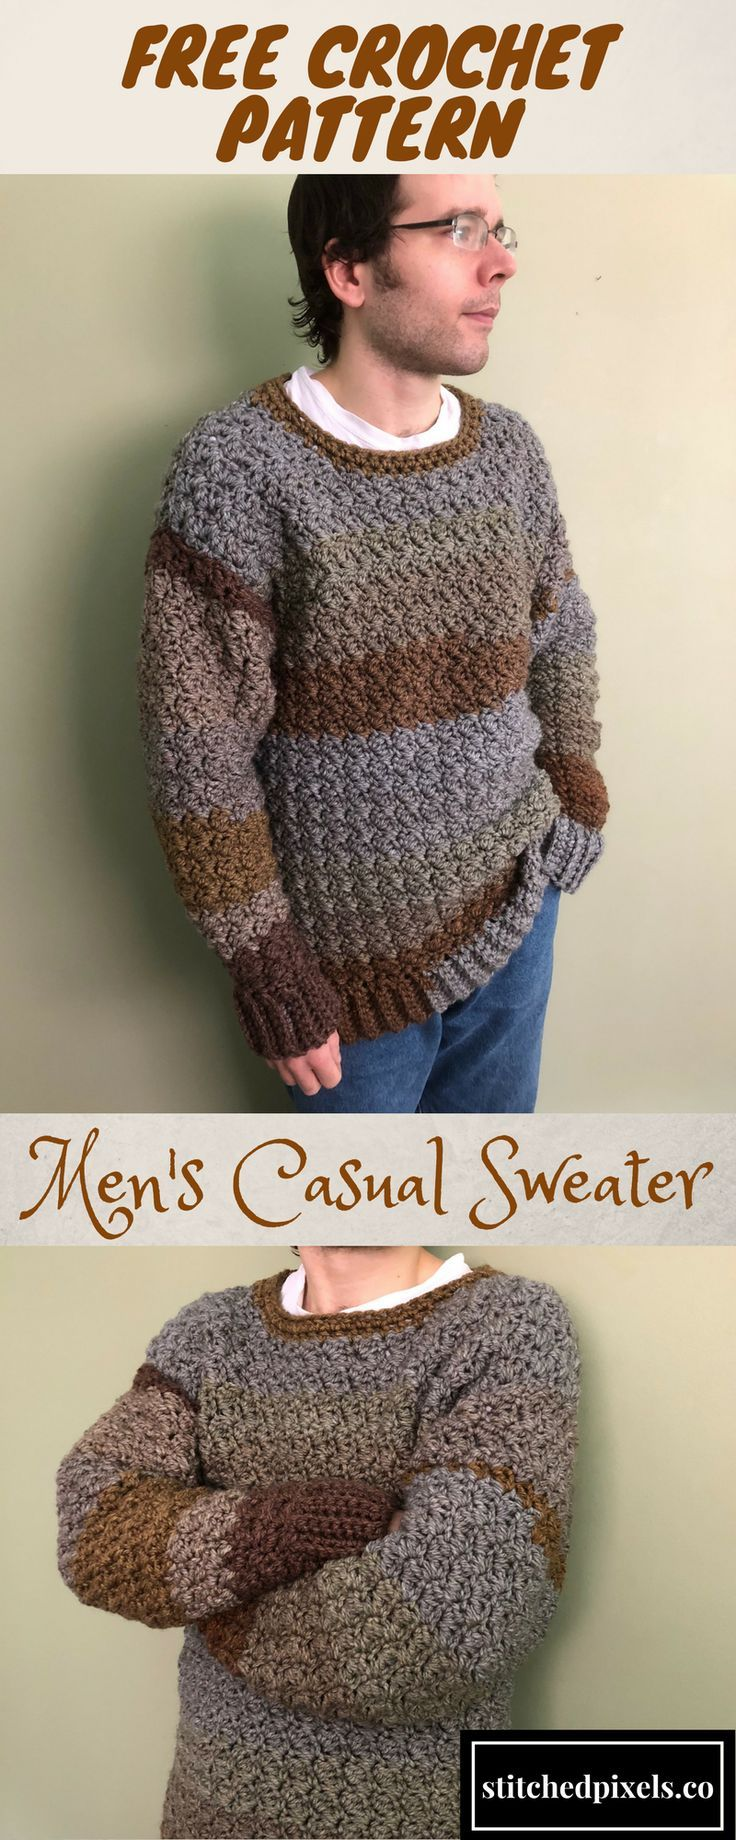 The Men's Casual Sweater is a perfect first sweater project for any crocheter. I have included dozens of photos to help beginners and experienced crocheters alike. The bulky yarn works up quickly, and you could complete yours in as little as 8 hours (or e